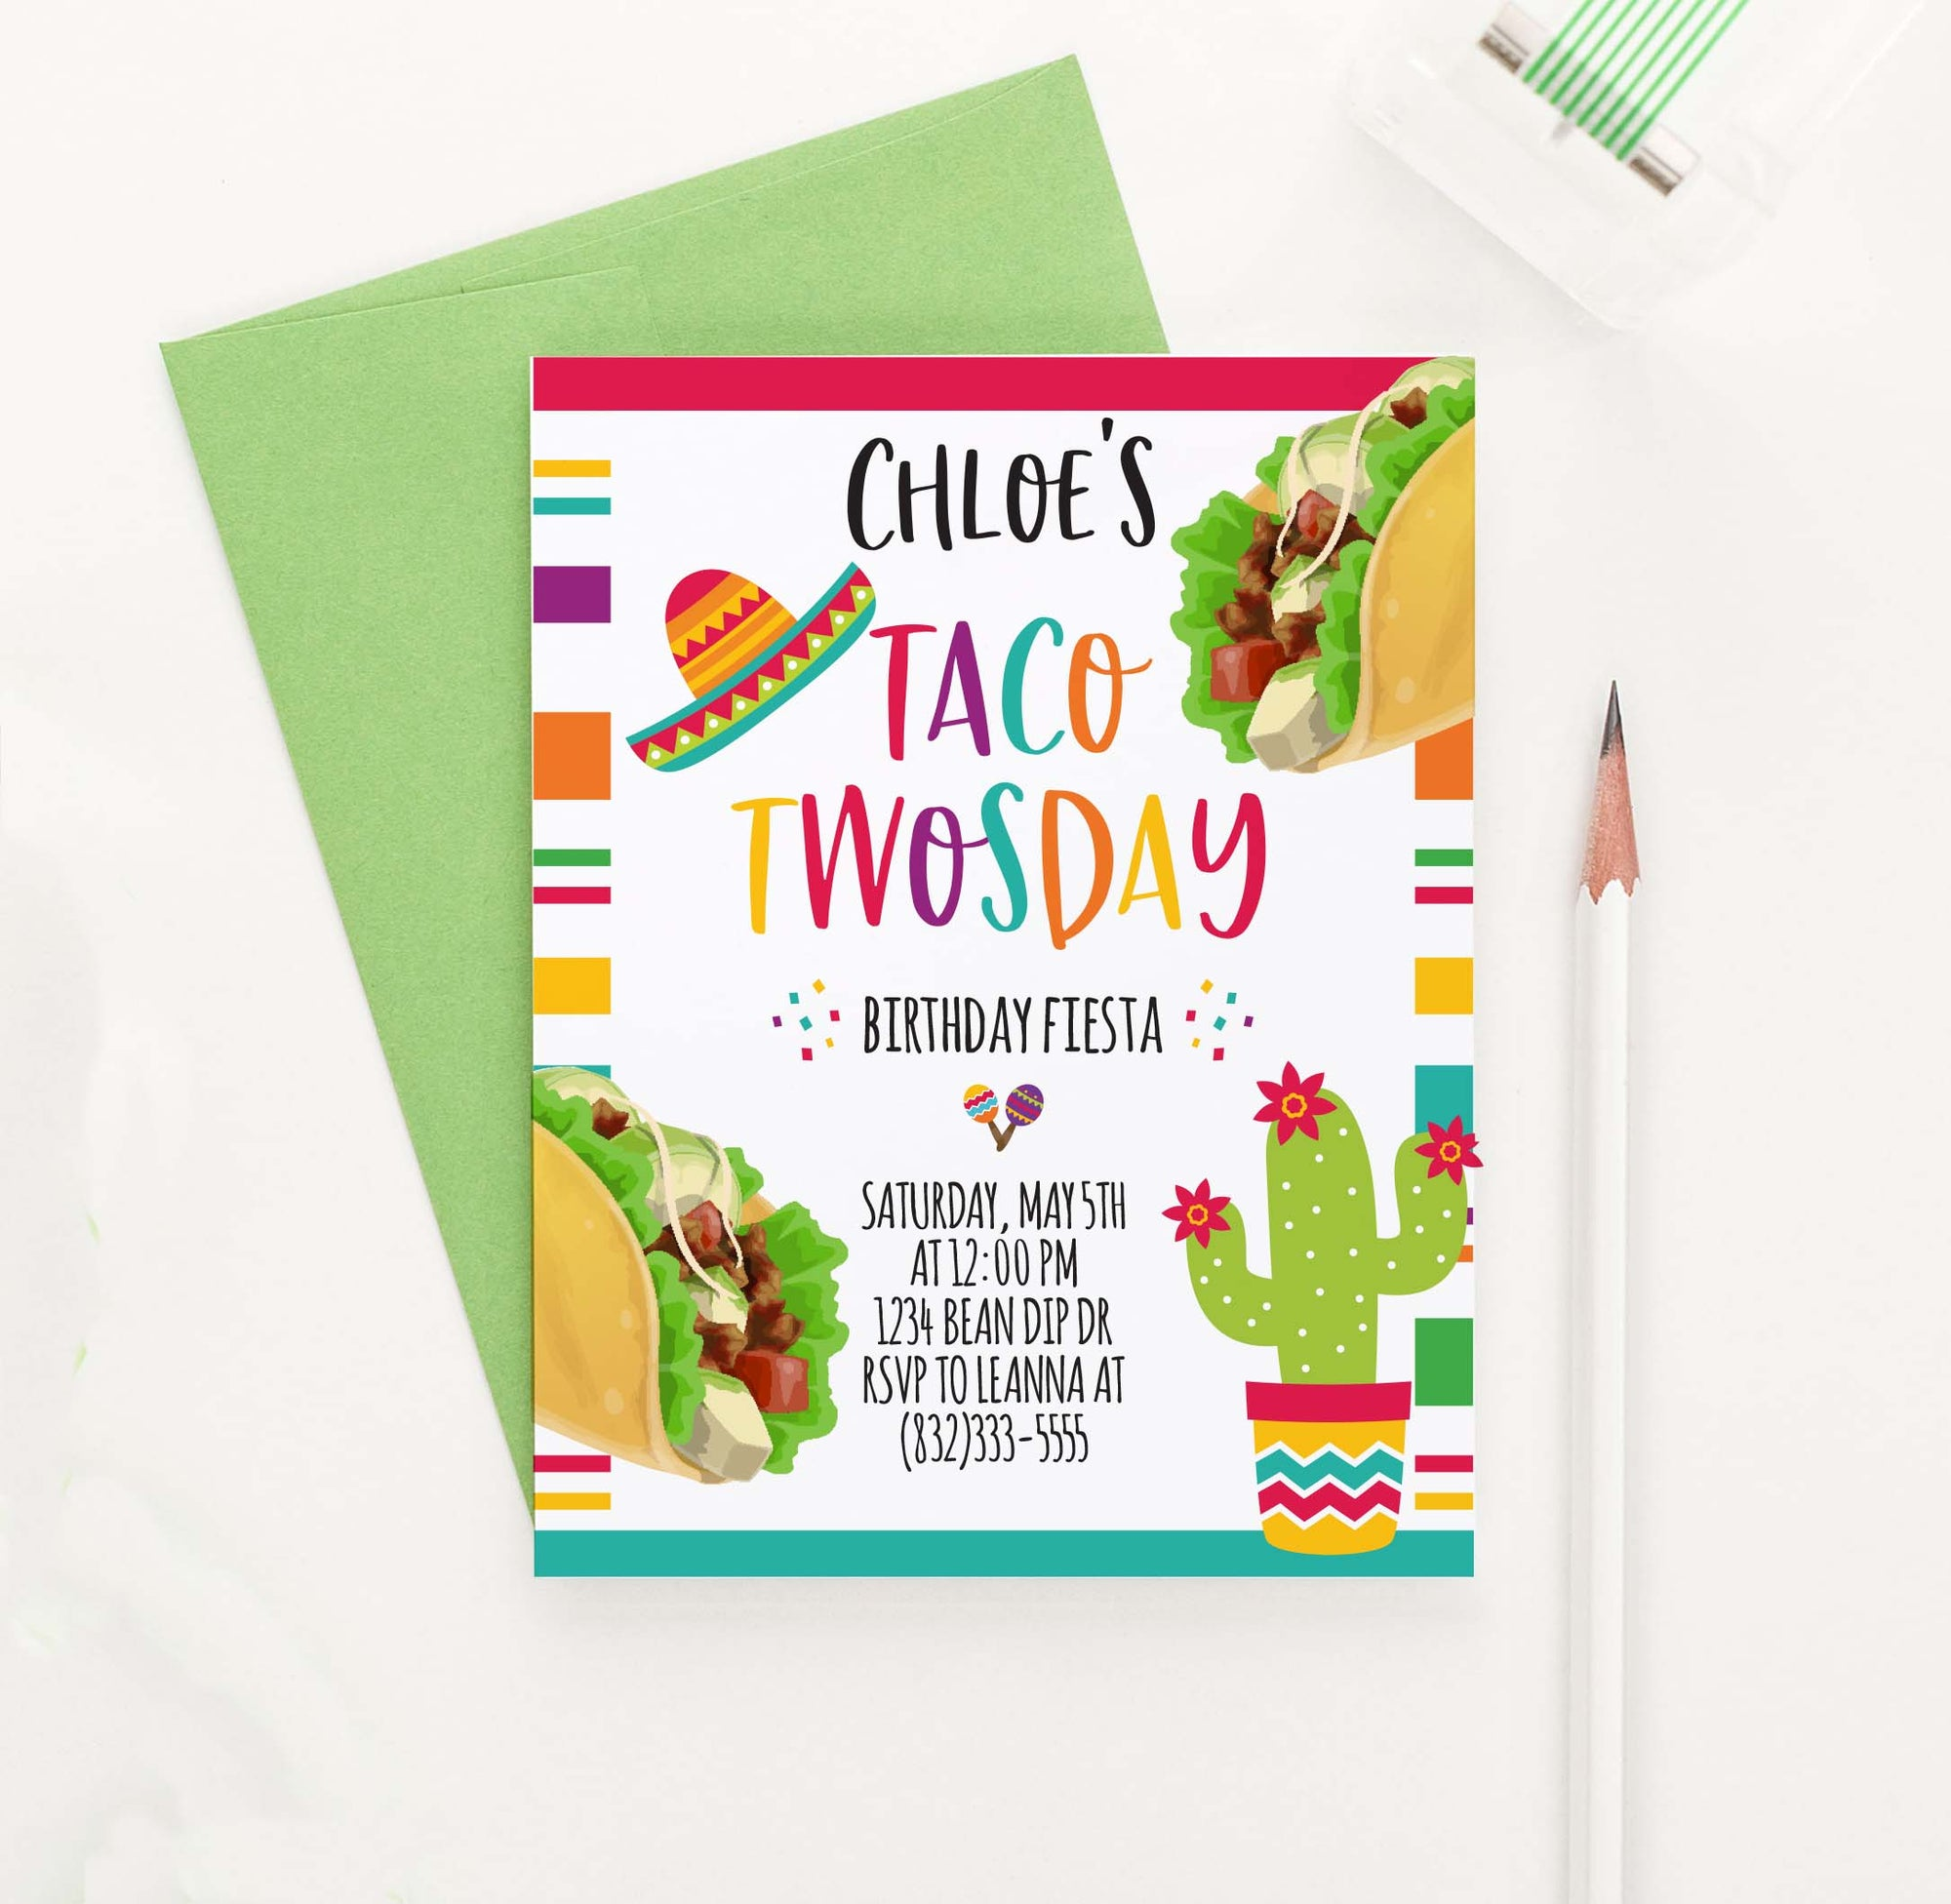 BI064 taco tuesday fiesta birthday party invites personalized cactus tacos festive